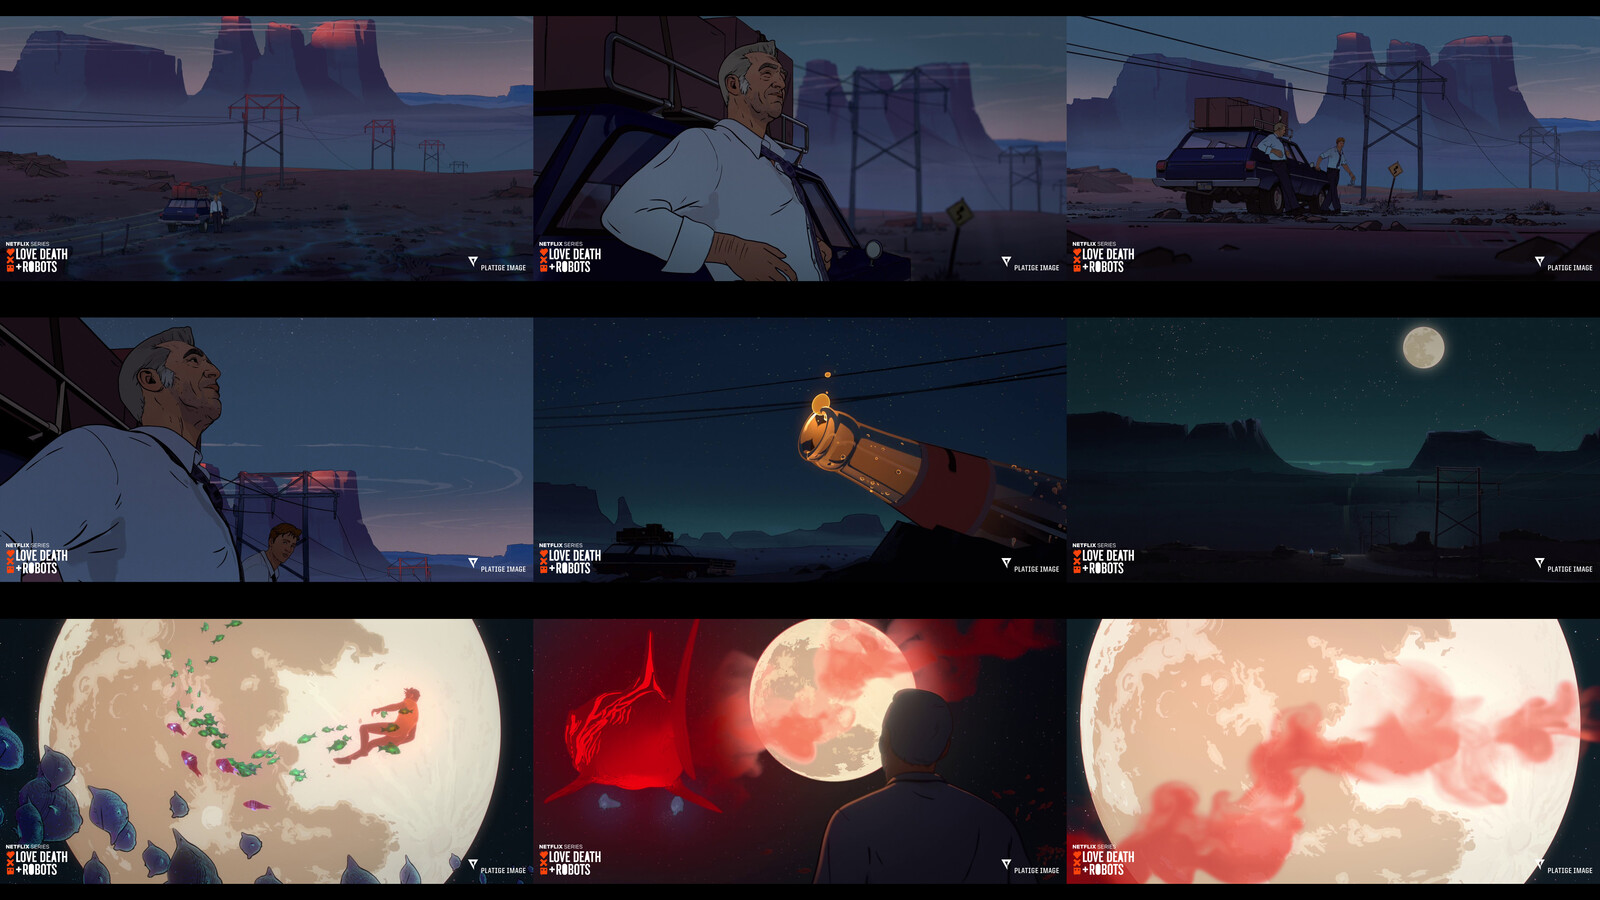 Final screenshots from the animated short